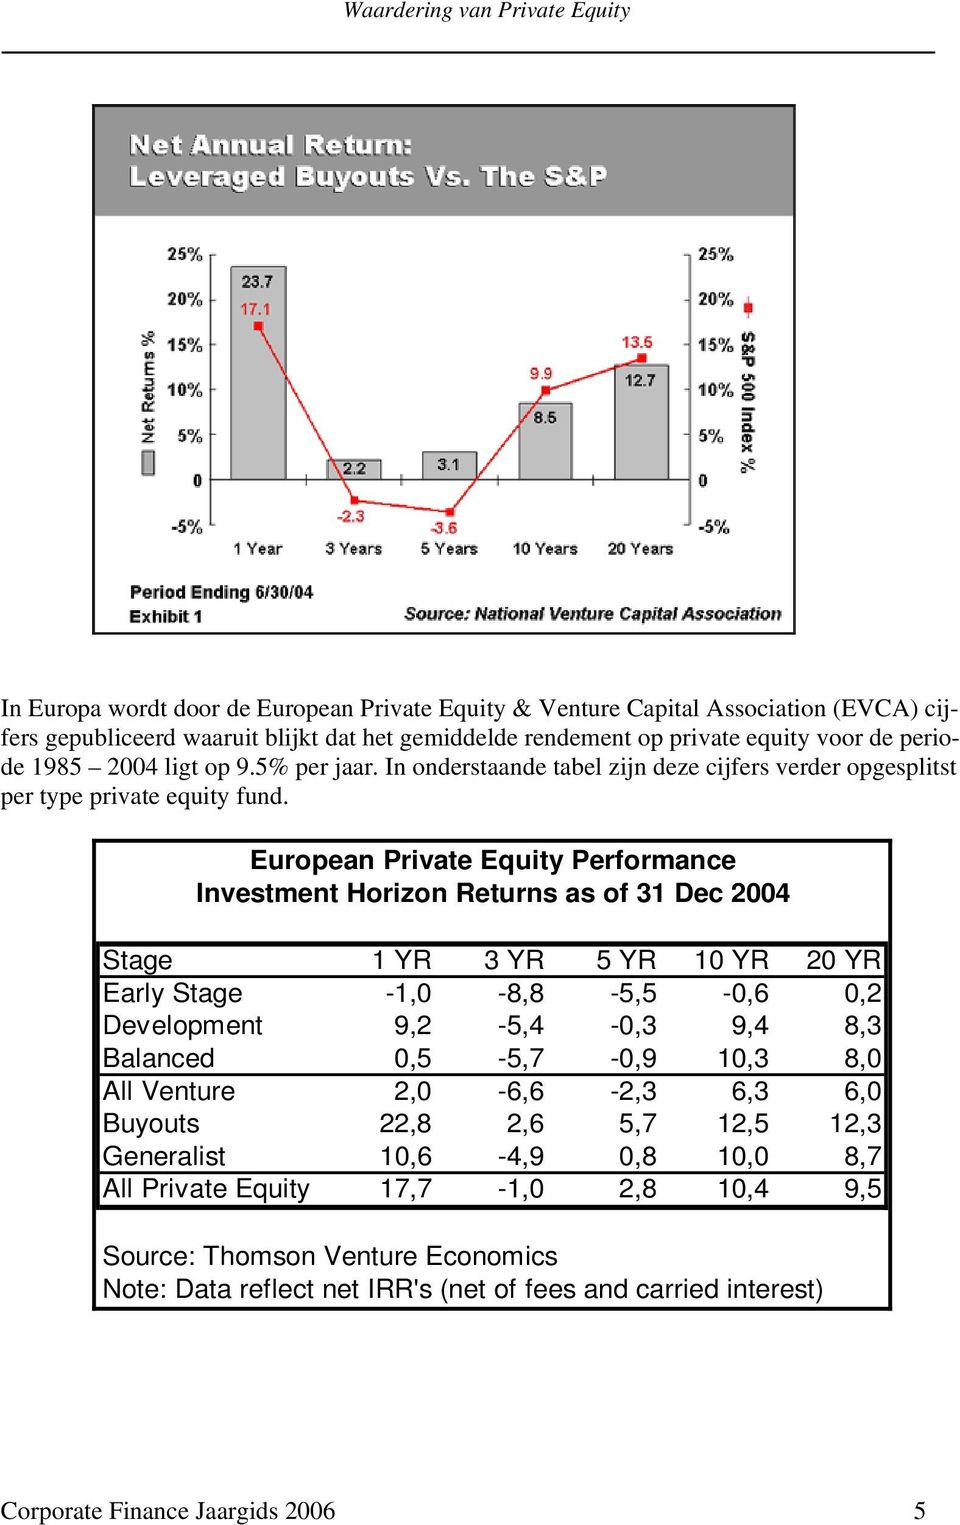 European Private Equity Performance Investment Horizon Returns as of 31 Dec 2004 Stage 1 YR 3 YR 5 YR 10 YR 20 YR Early Stage -1,0-8,8-5,5-0,6 0,2 Development 9,2-5,4-0,3 9,4 8,3 Balanced